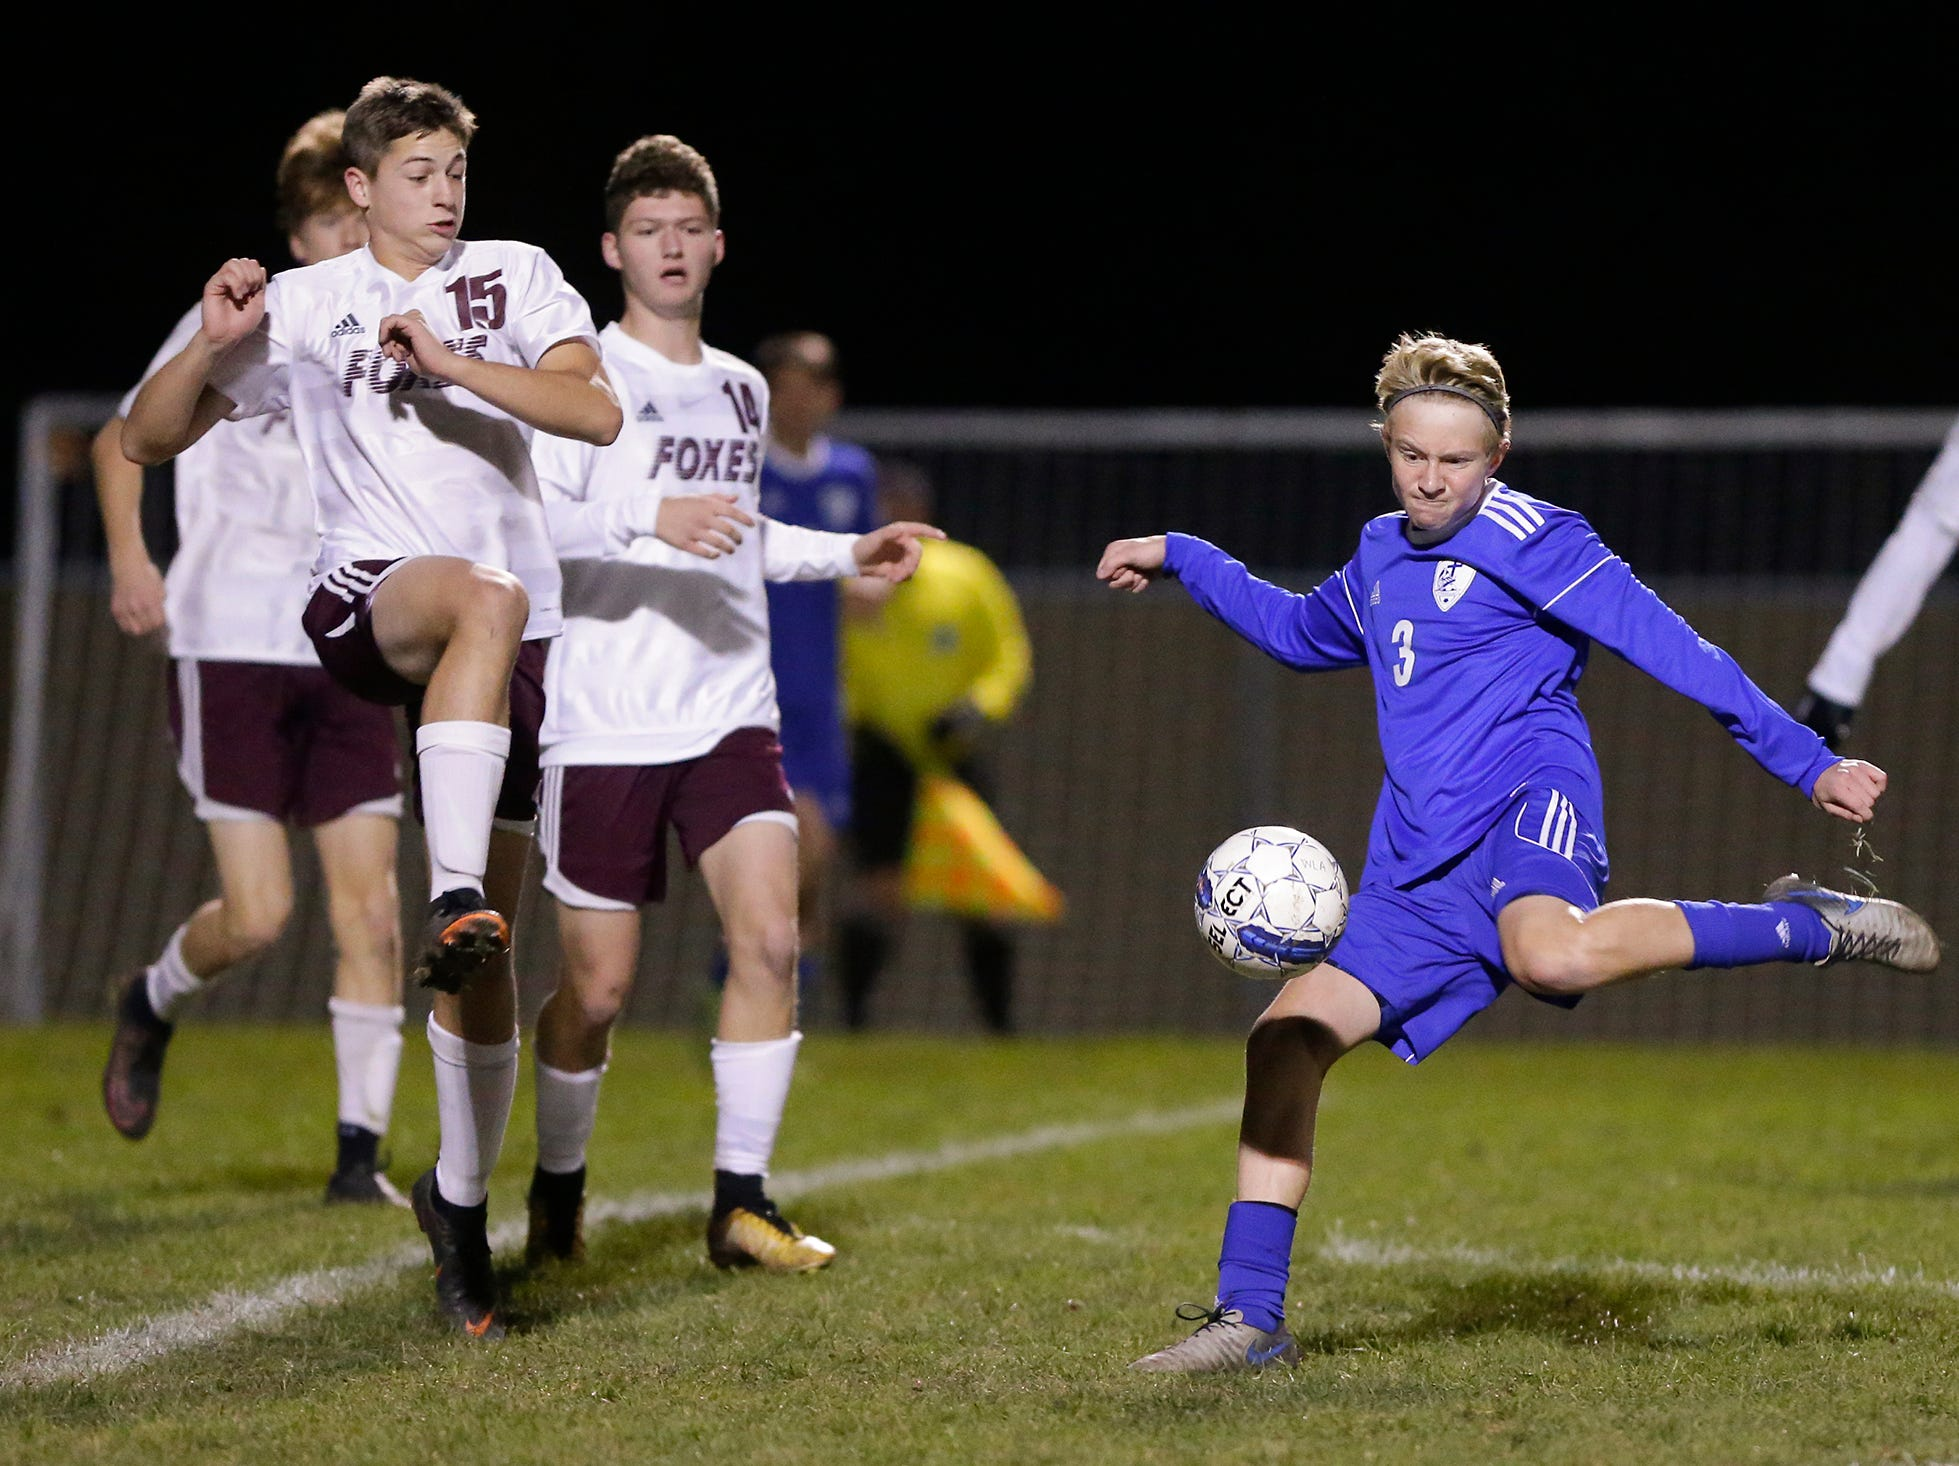 Winnebago Lutheran Academy soccer's Carter Sampson kicks the ball against Omro High School during their WIAA regional playoff game Thursday, October 18, 2018 in Fond du Lac, Wisconsin. Doug Raflik/USA TODAY NETWORK-Wisconsin